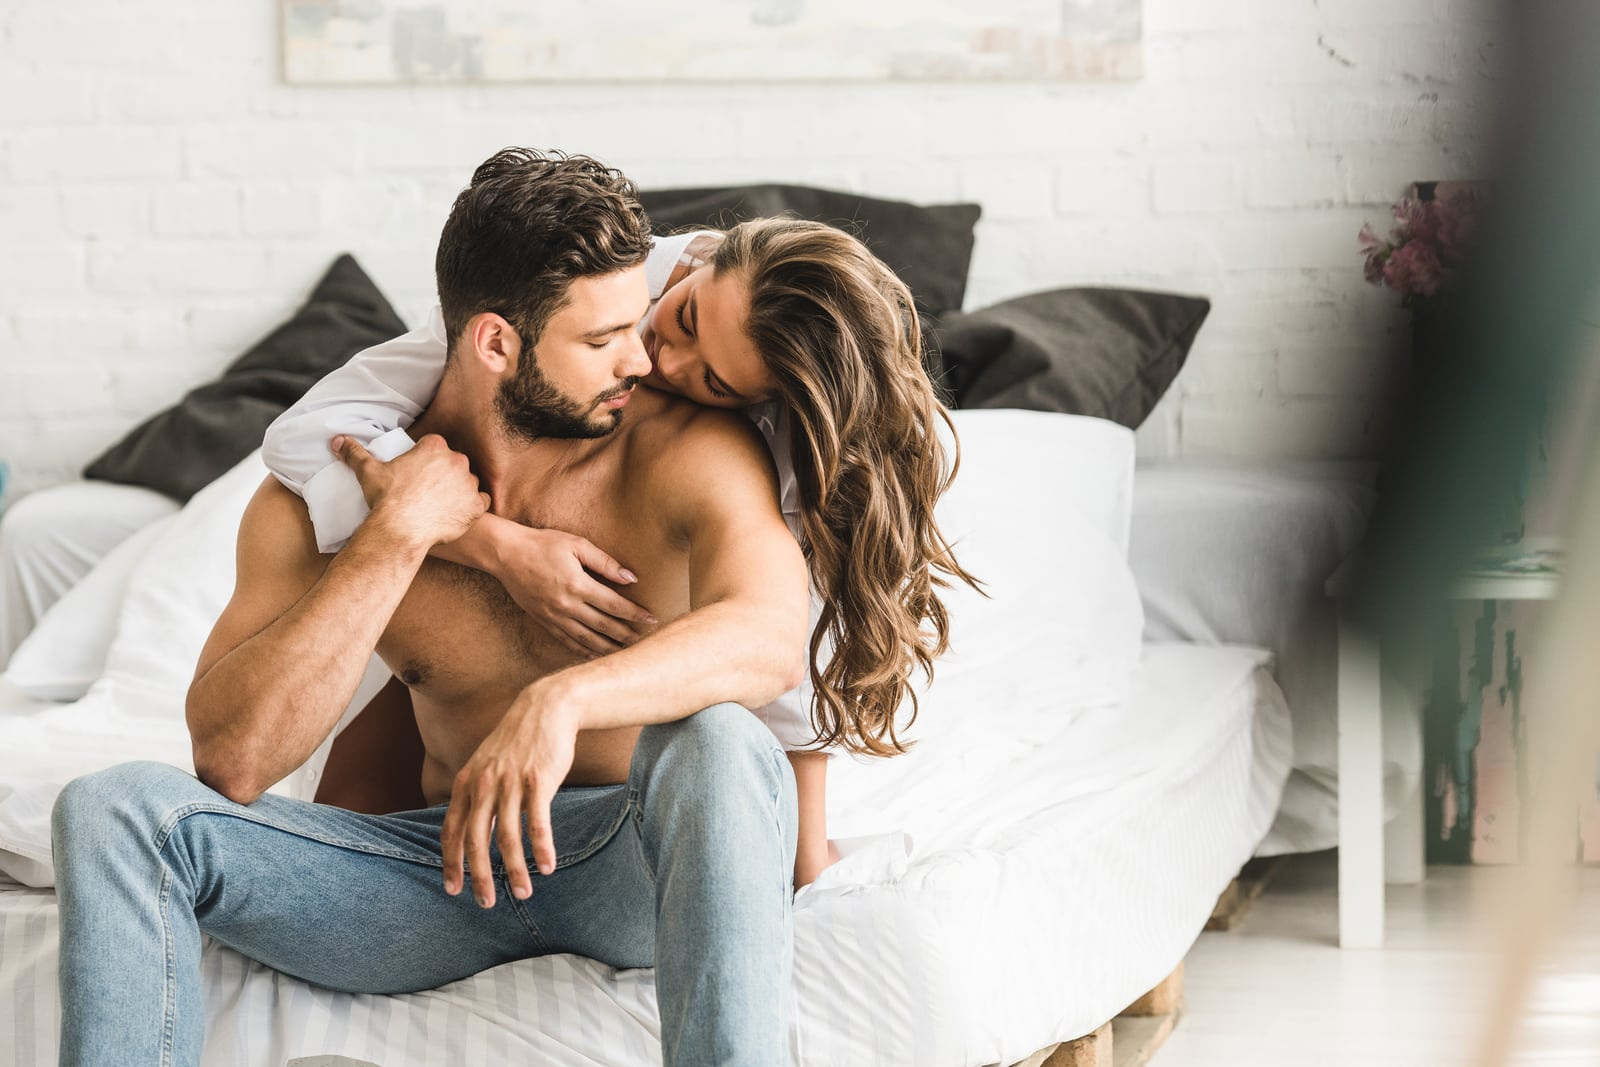 the brunette in bed hugs from the back of a handsome man